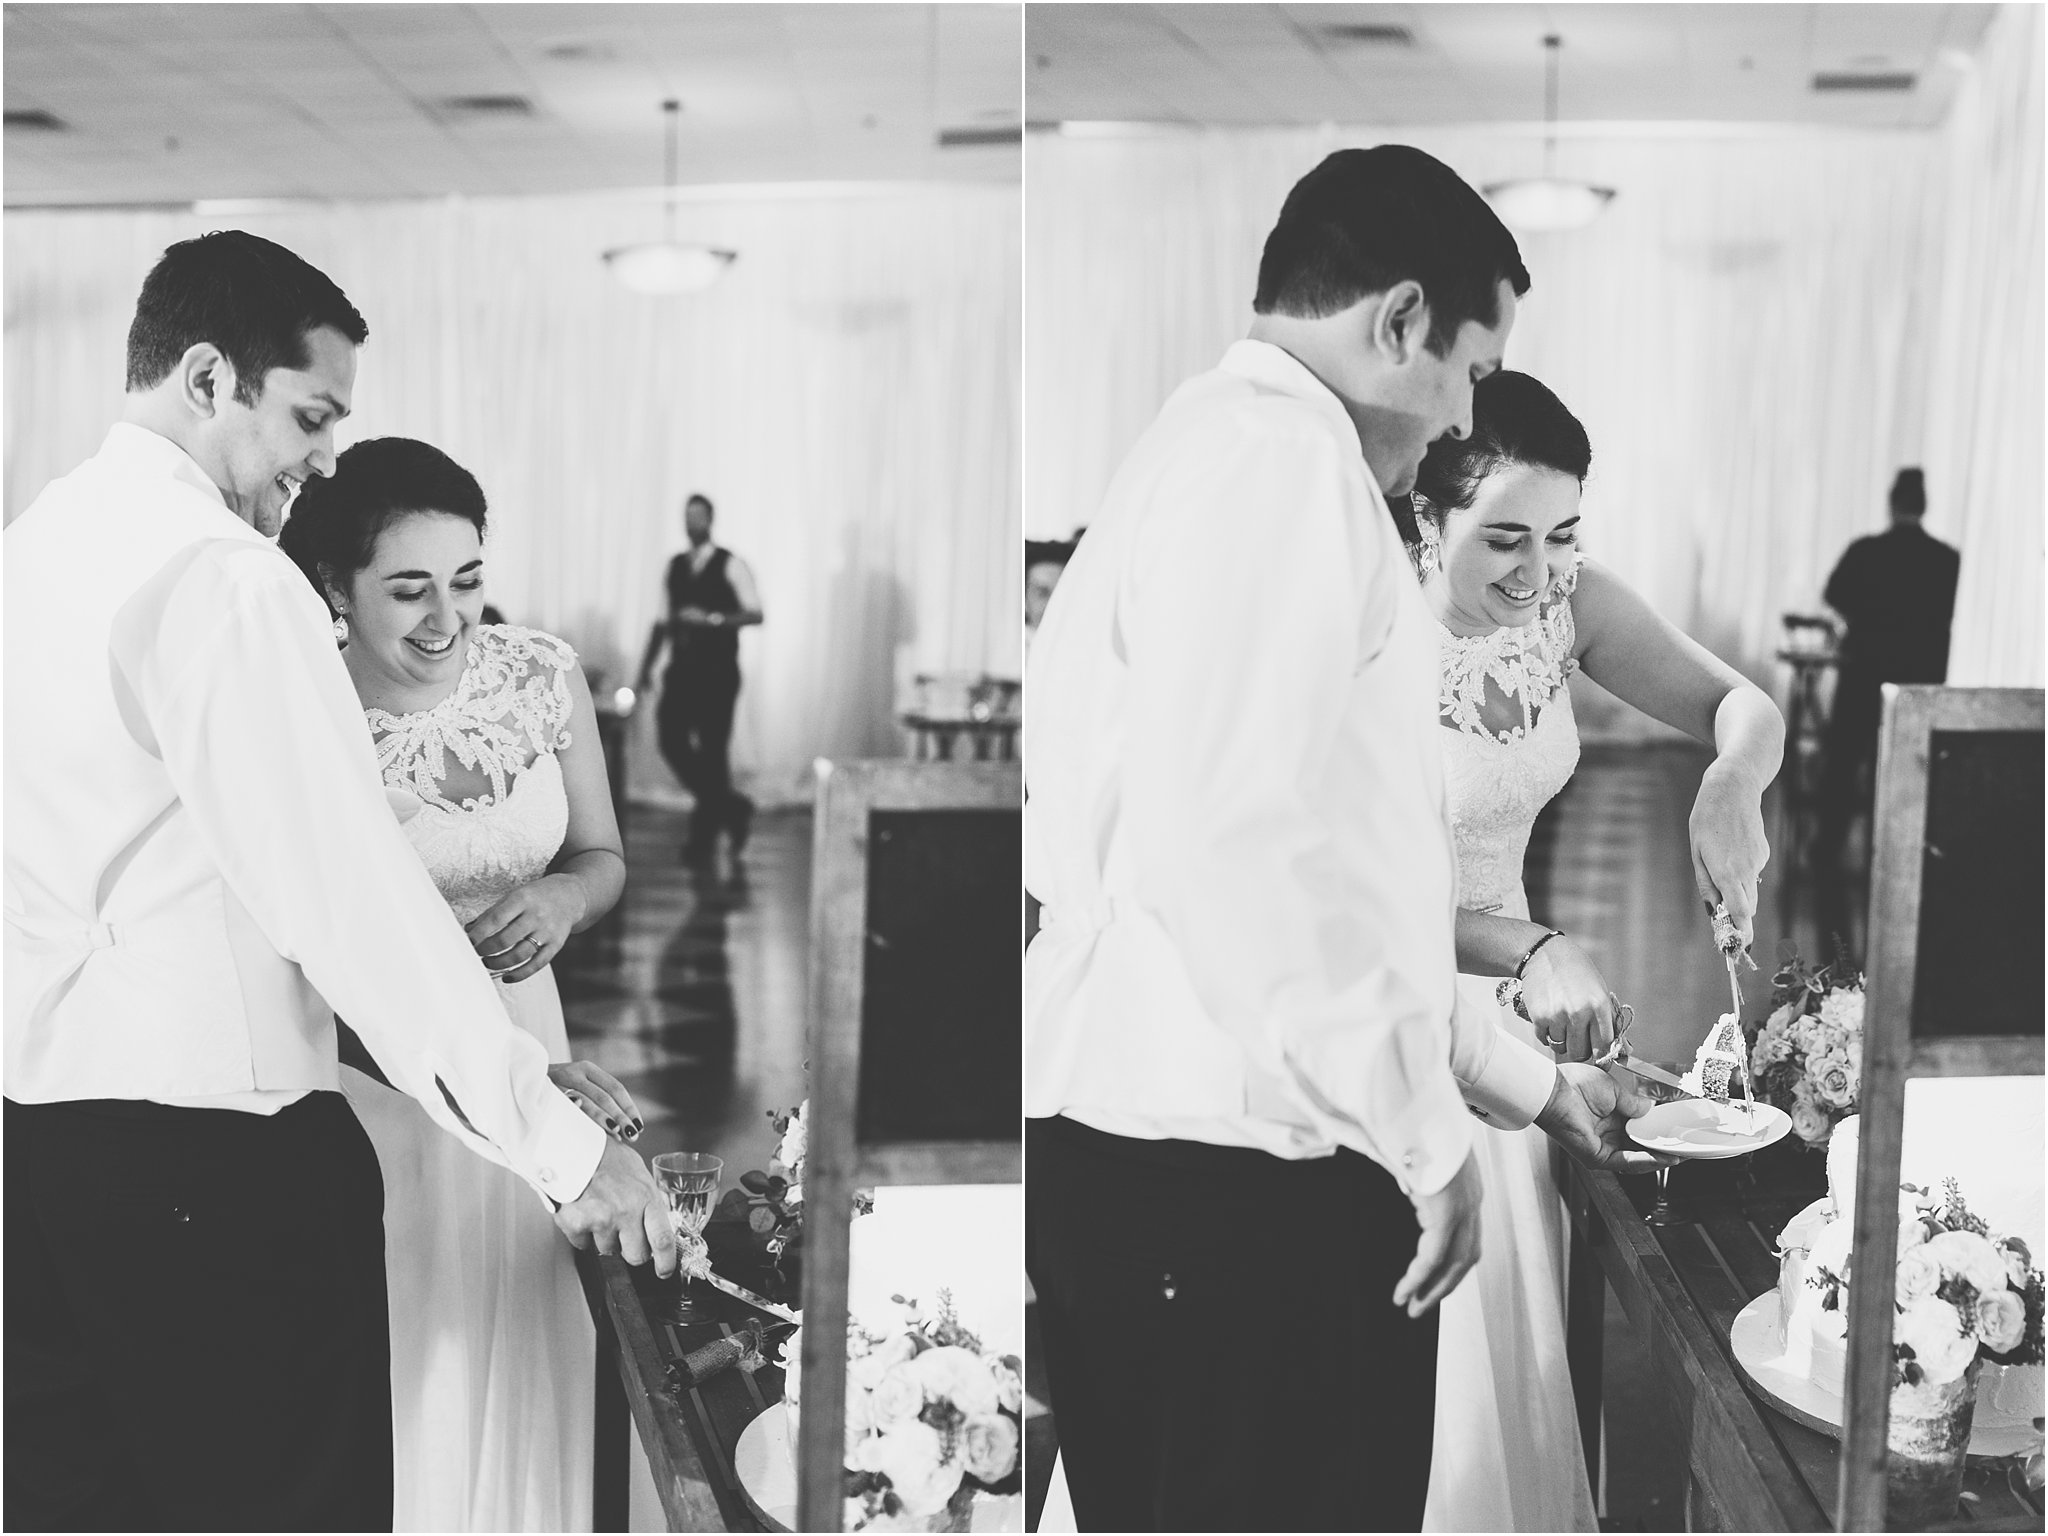 jessica_ryan_photography_virginia_wedding_photographer_wedding_hurricane_norfolk_botanical_gardens_hurricane_matthew_wedding_3636